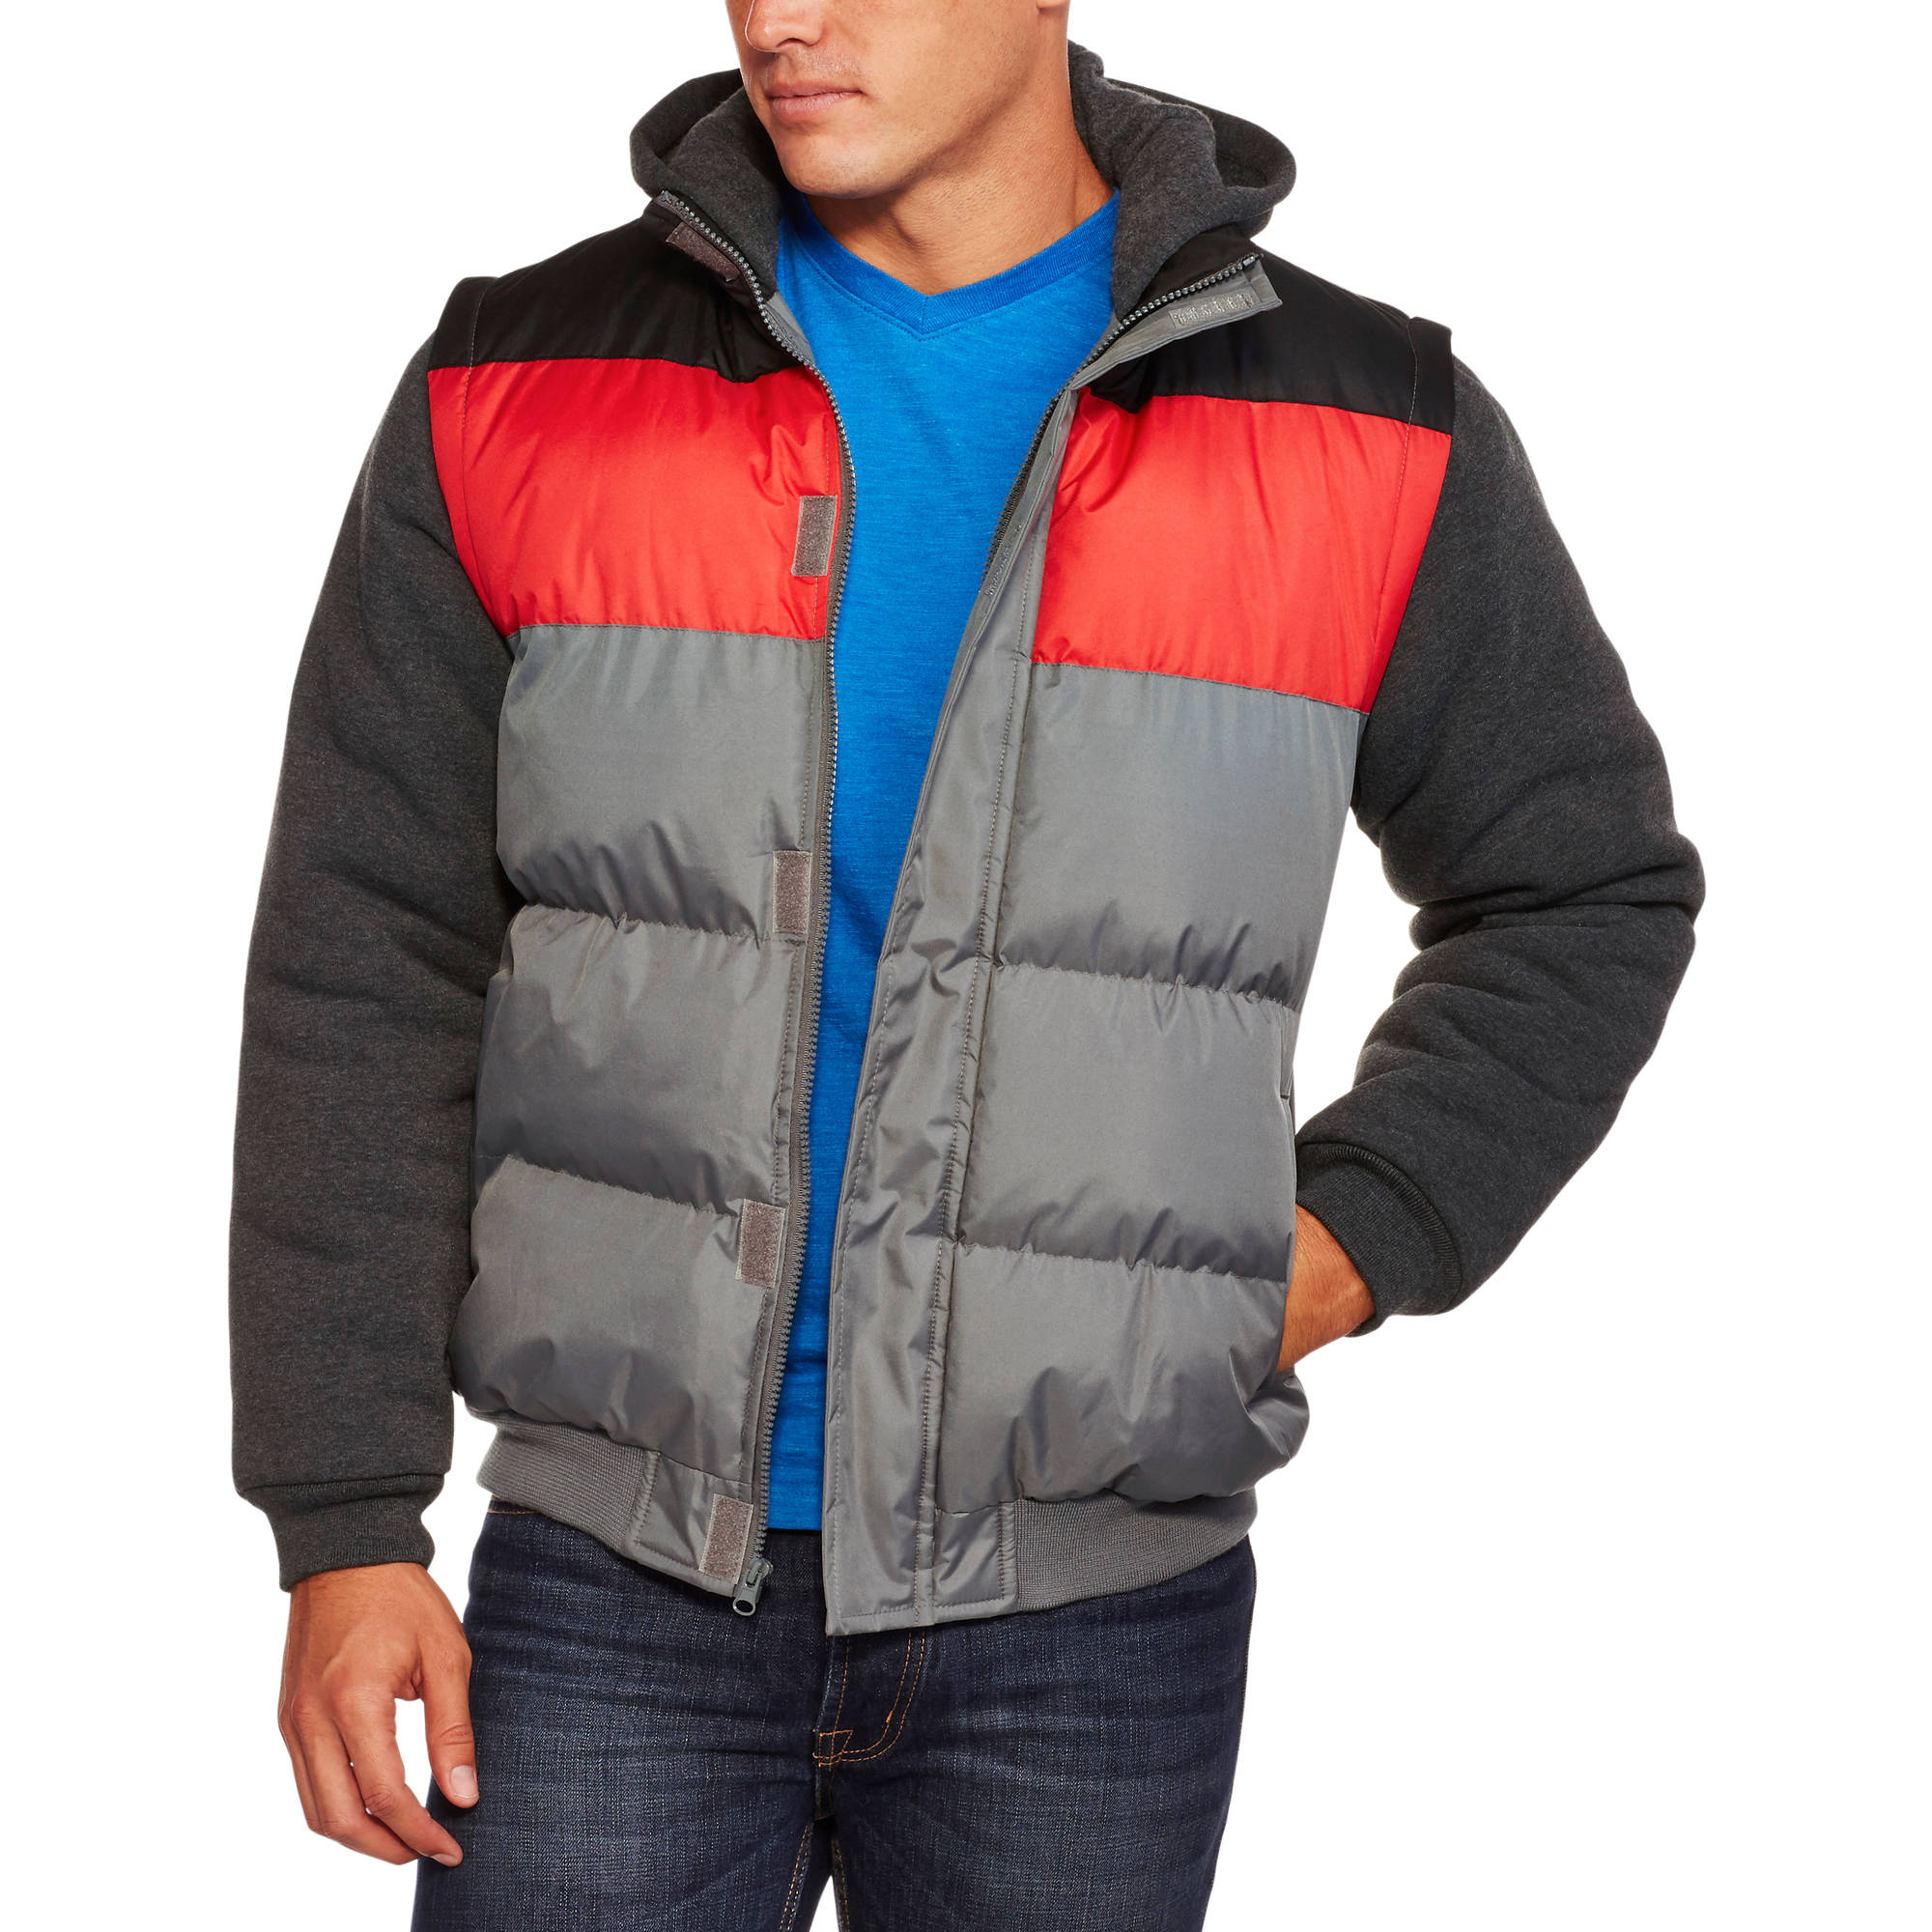 Climate Concepts Men's Bubble Jacket with Fleece Sleeves and Hood